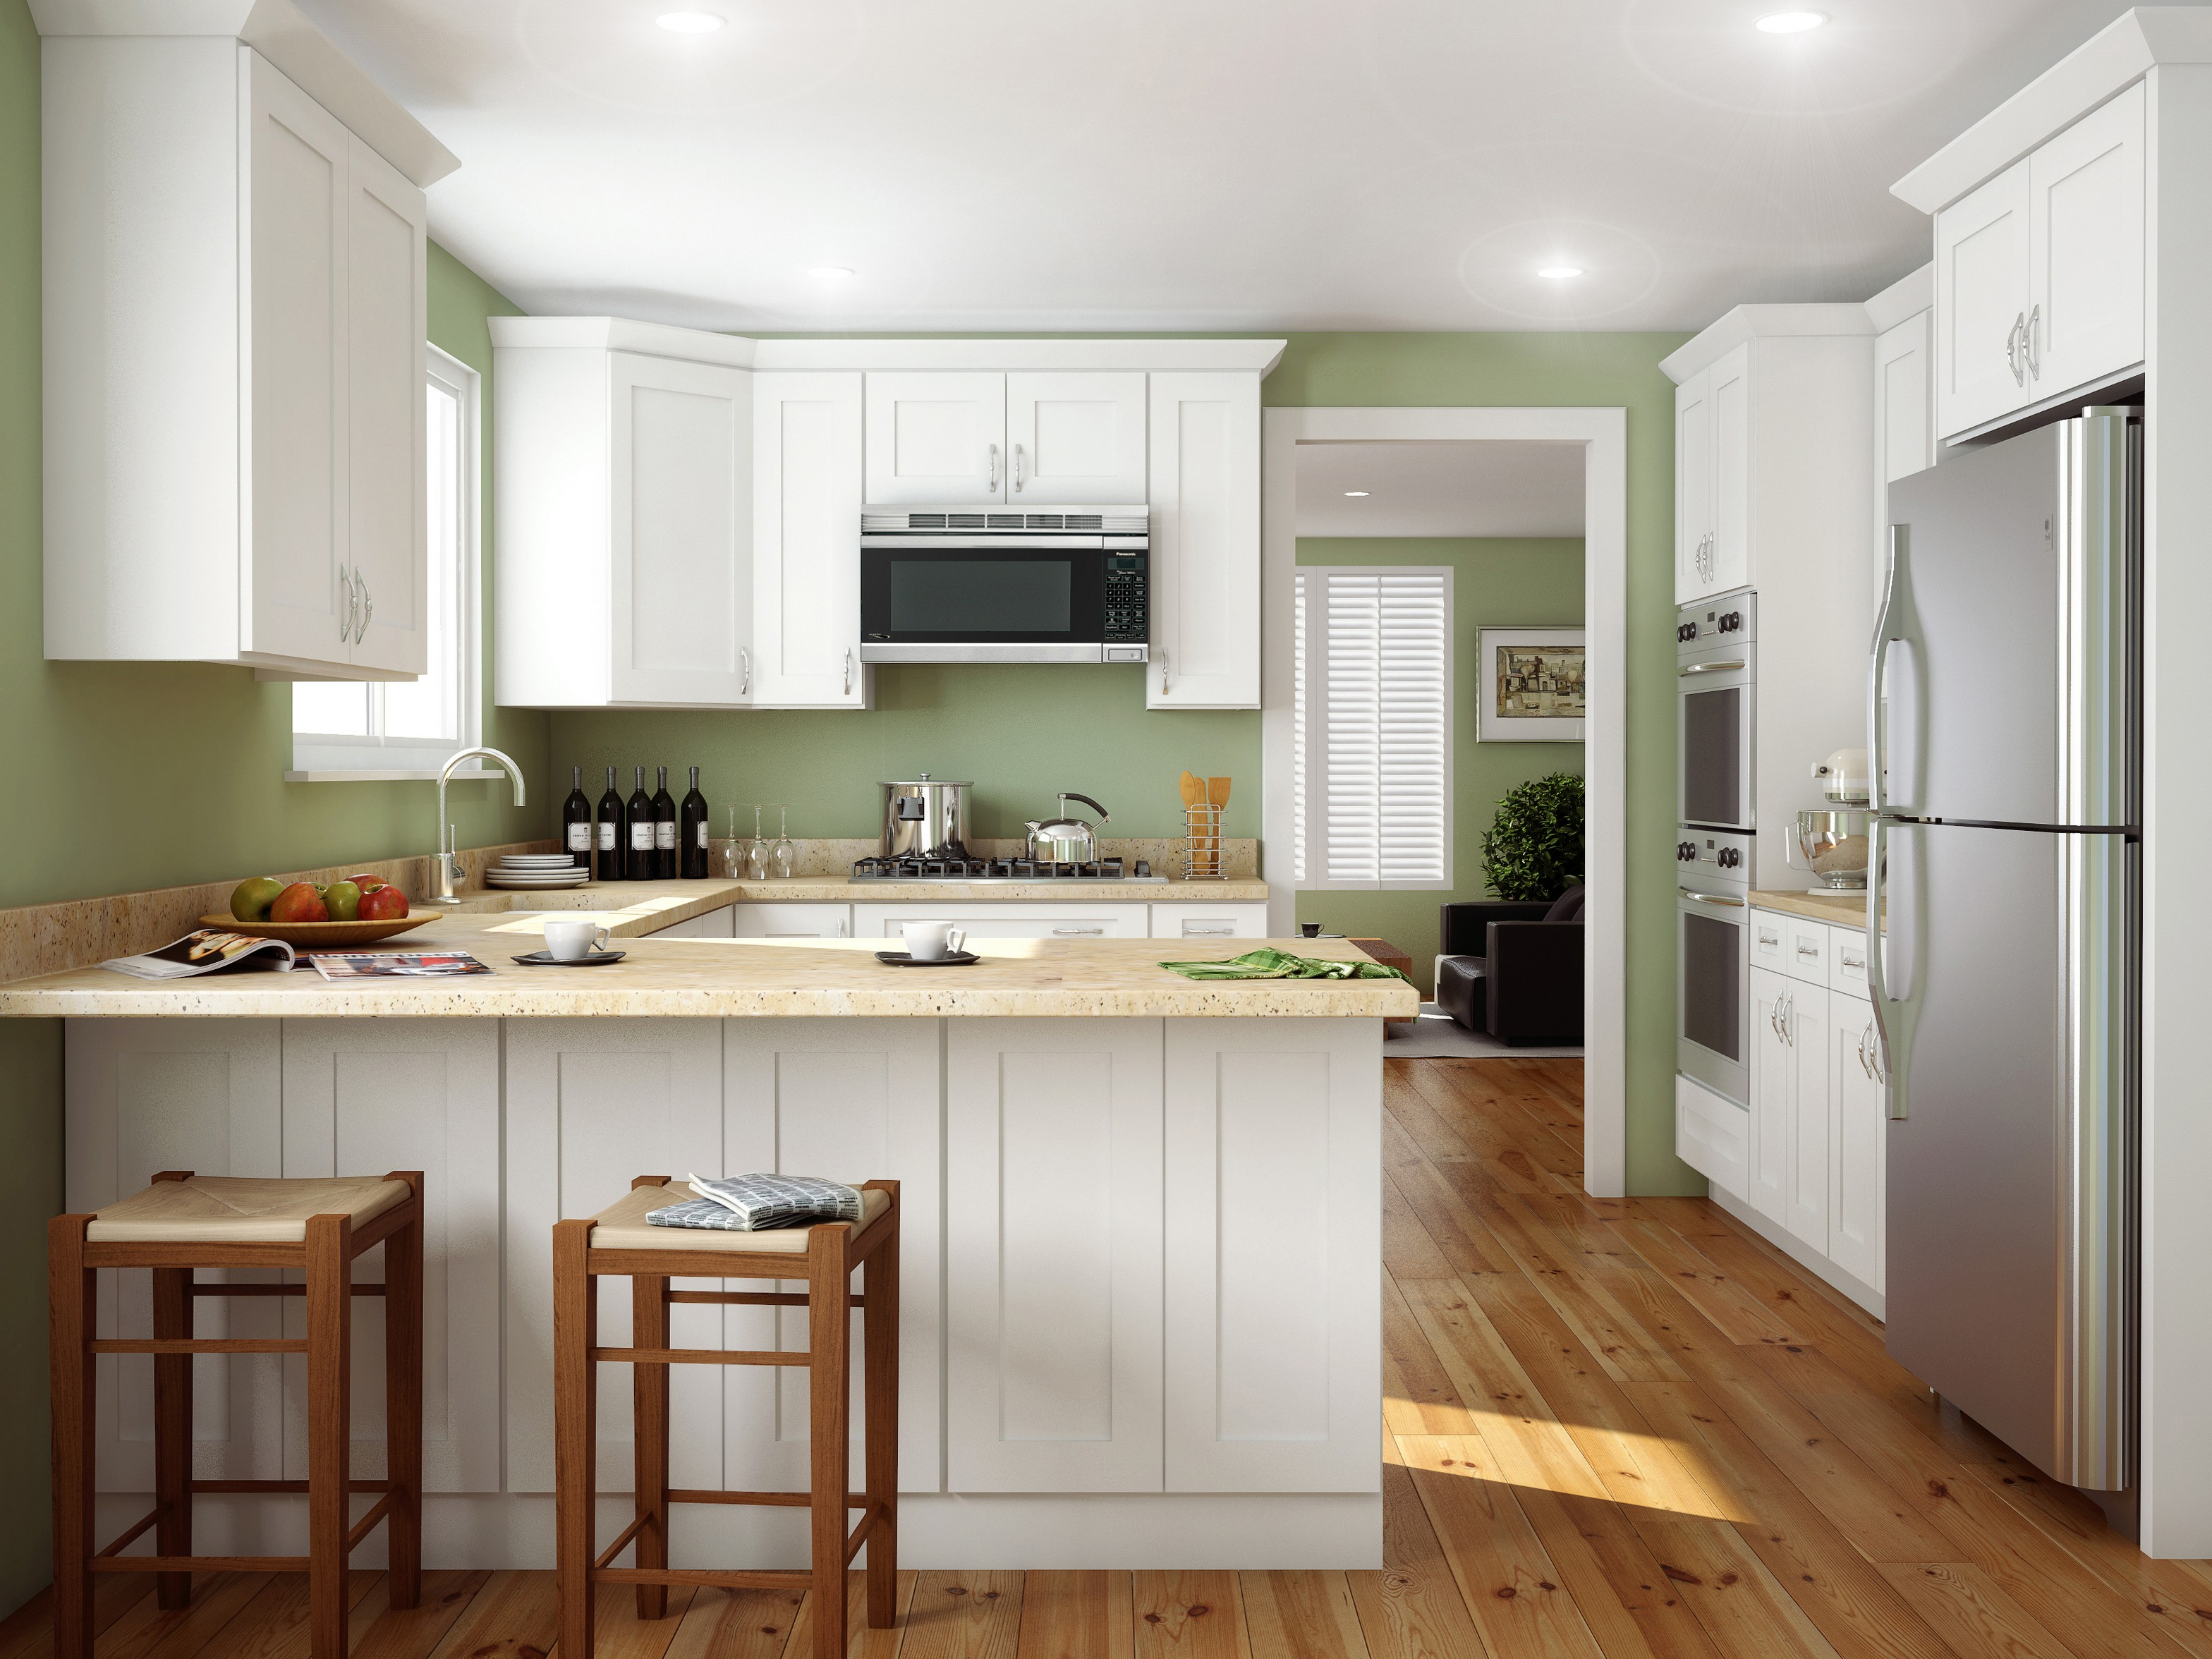 How To Evaluate A Kitchen Before Buying A Home |